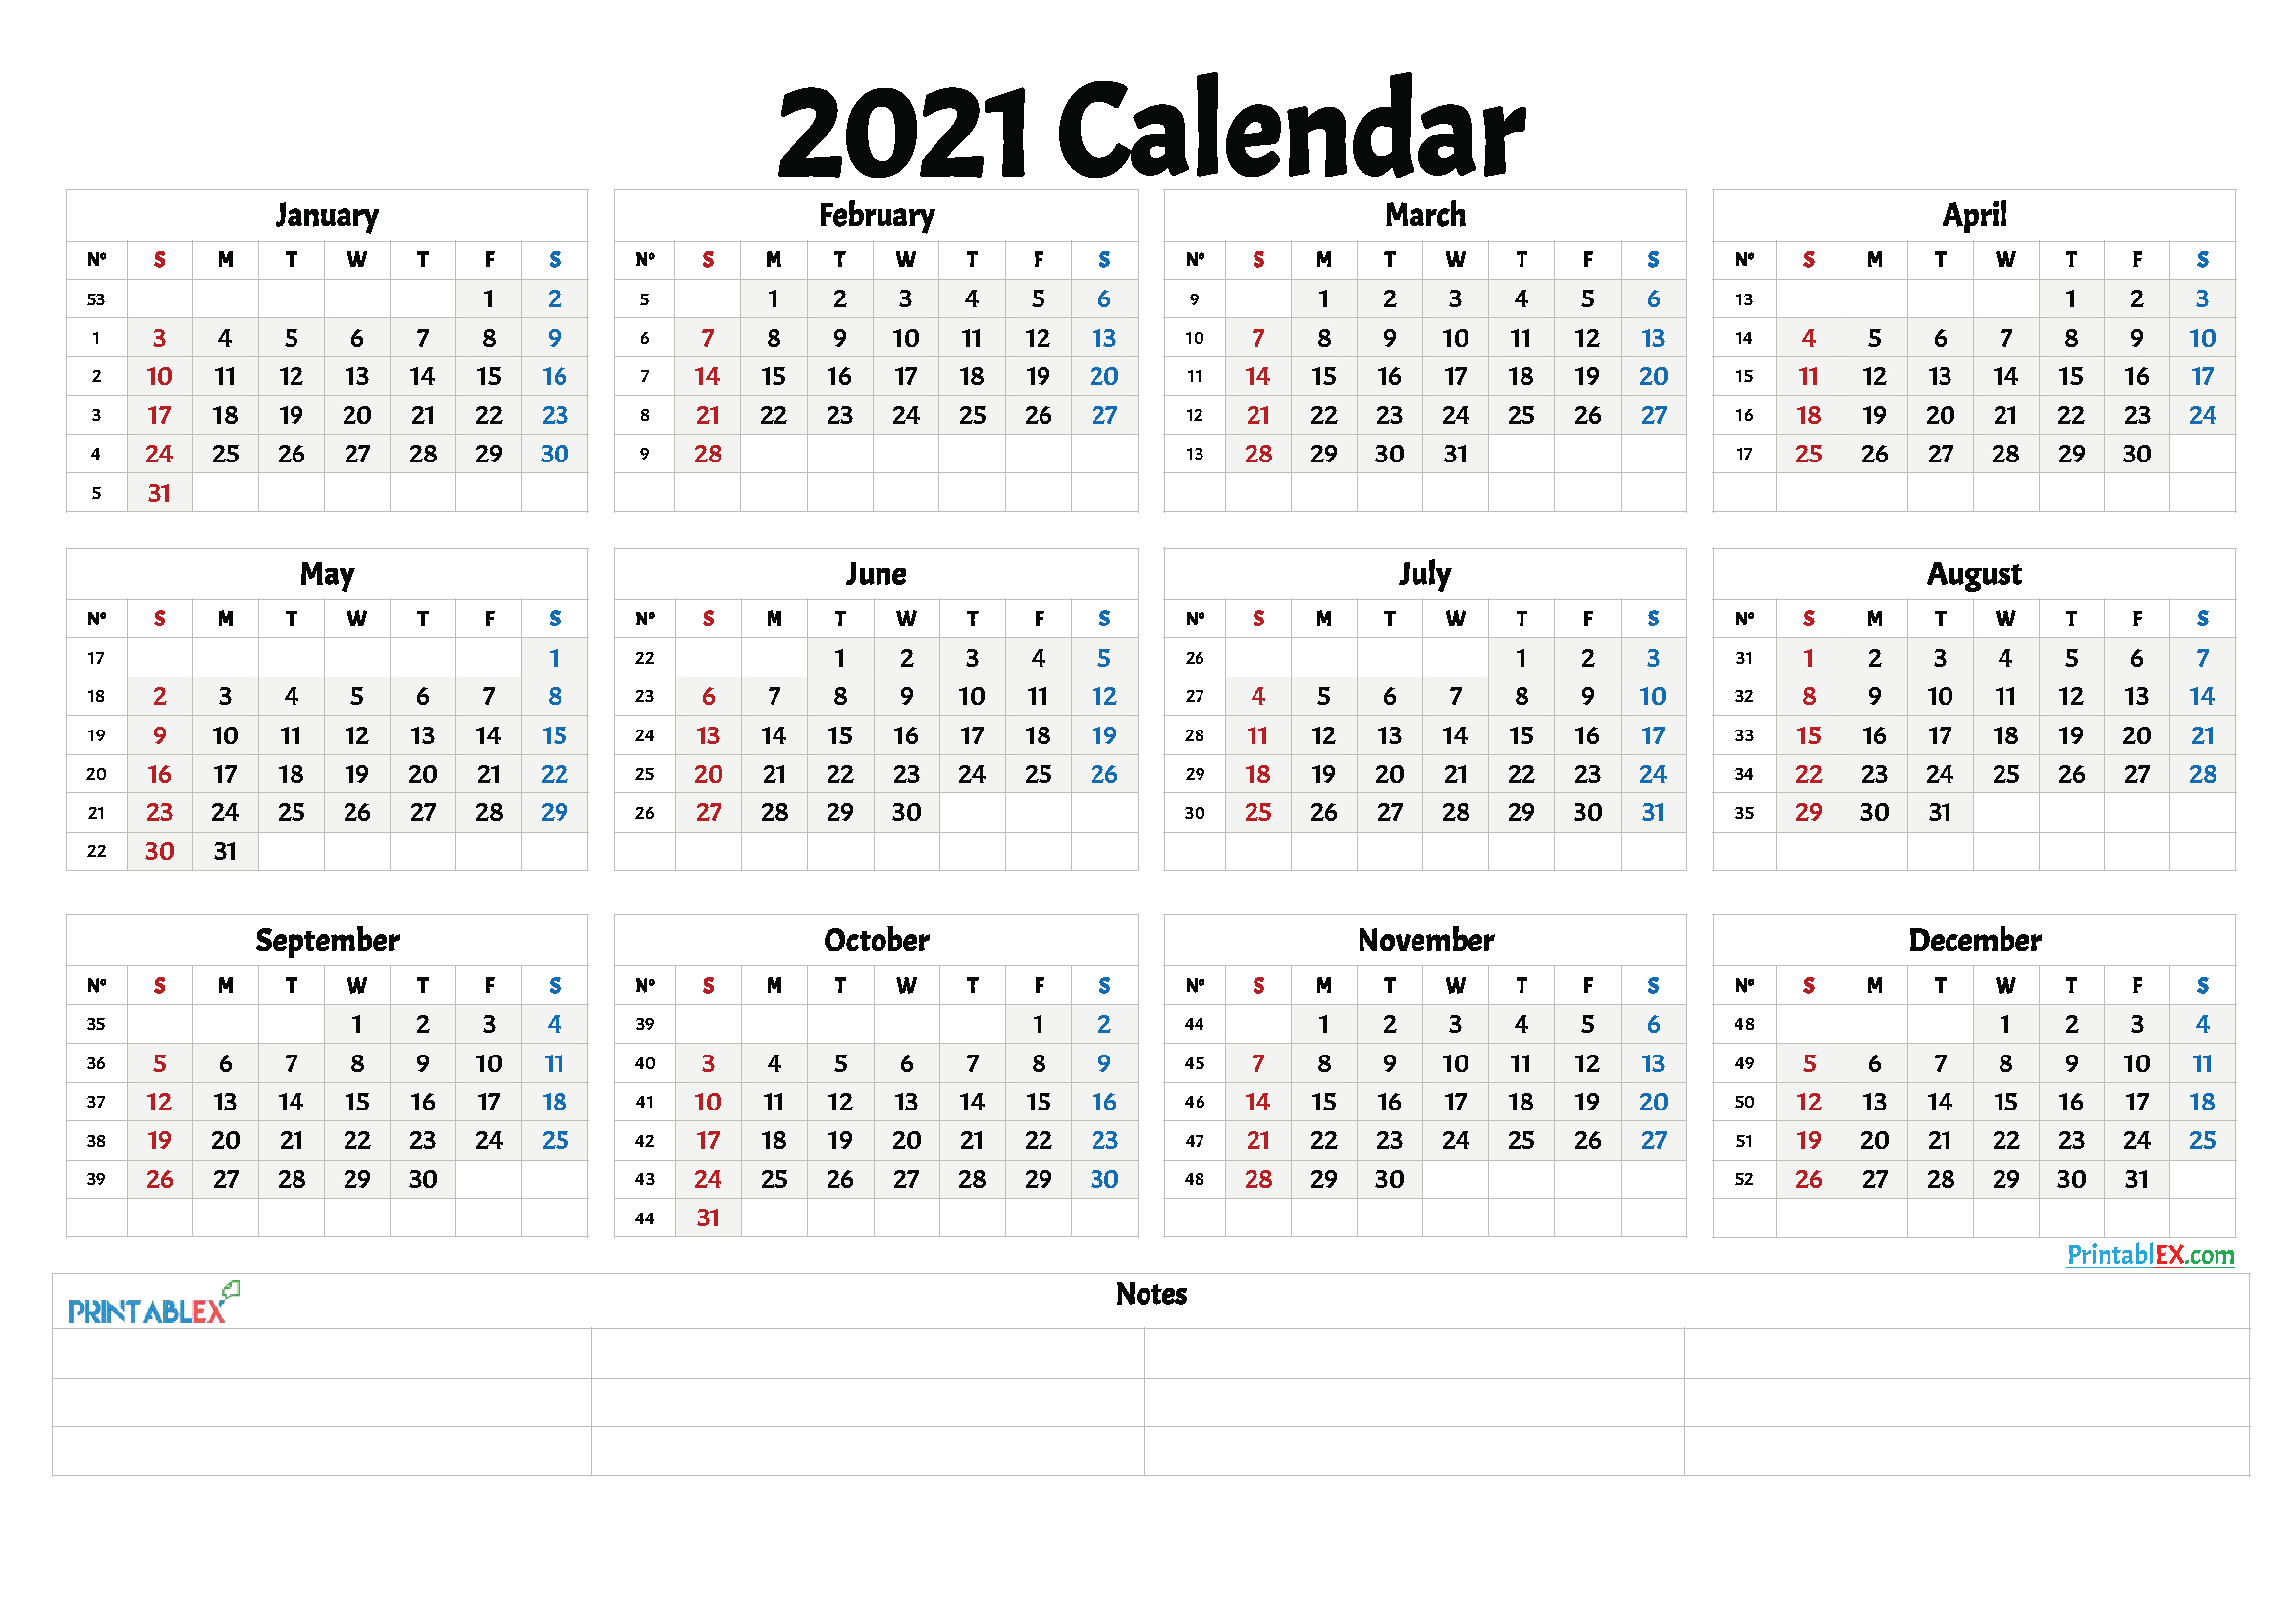 Free Printable 2021 Yearly Calendar With Week Numbers throughout Monthly Calendar By Week Number 2021